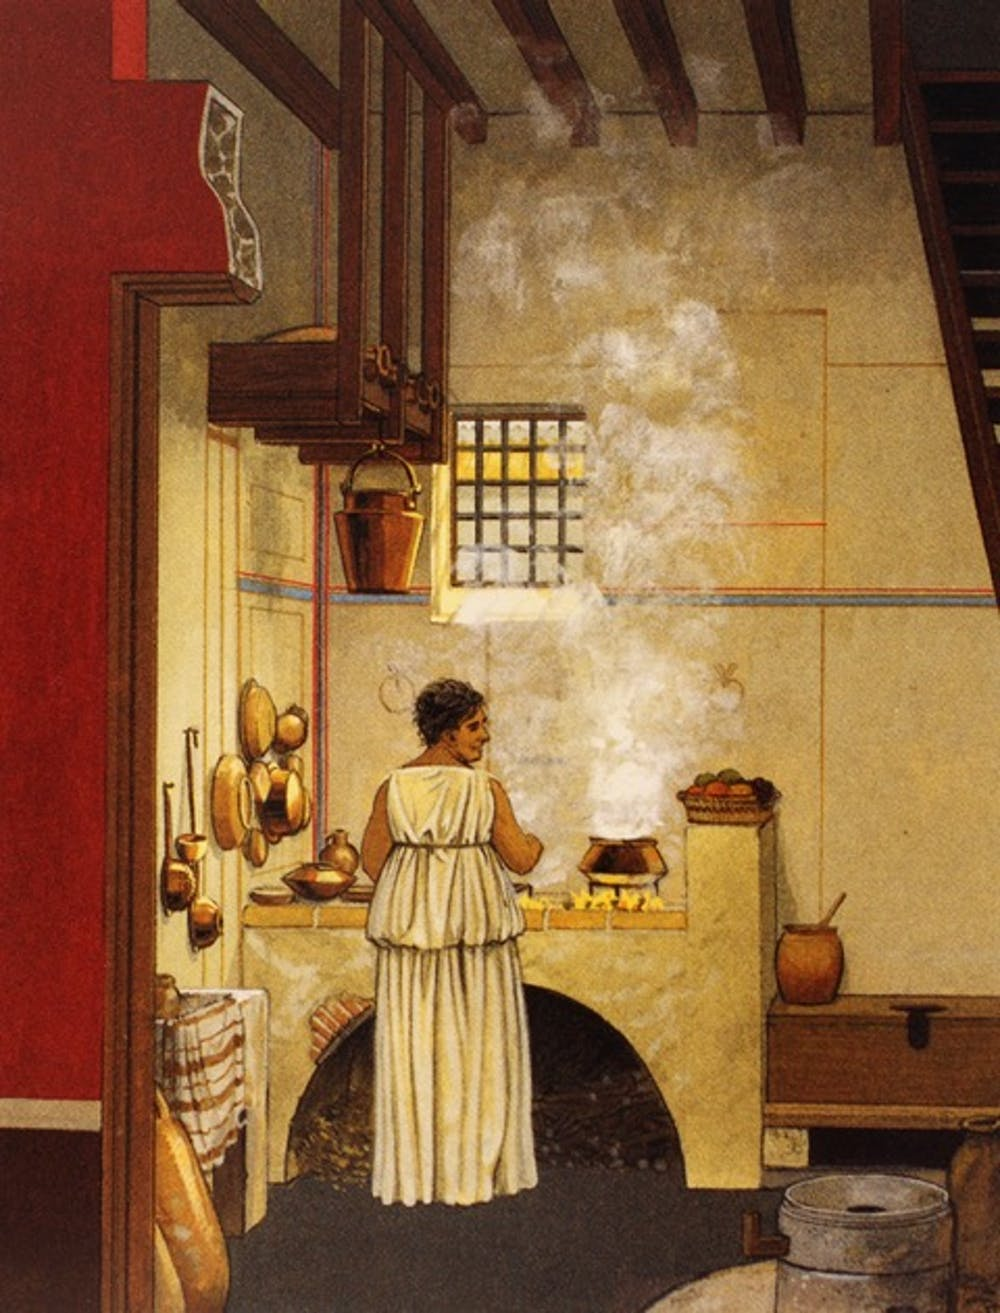 Artists Imagining Of A Typical Roman Kitchen With Toilet Featured To The Right Cooking Area Connolly And Dodge Ancient City P 148 AKG Images